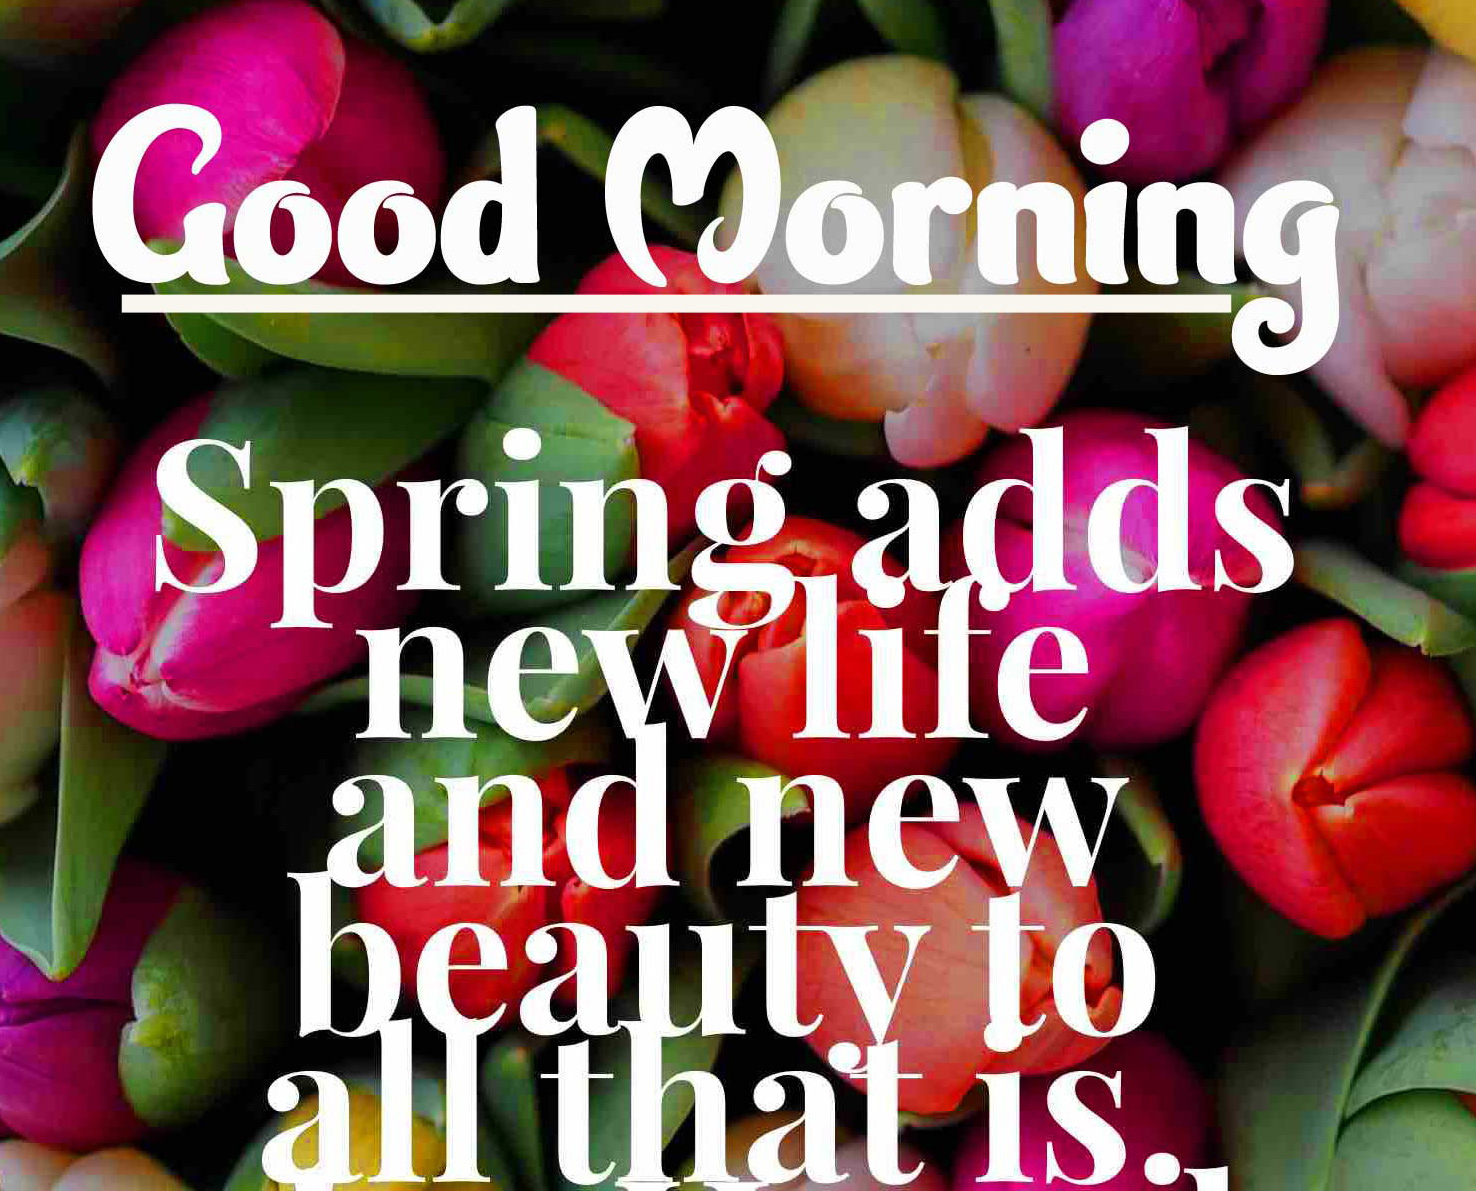 Good Morning Wishes Images with positive thoughts pics DOWNLOAD